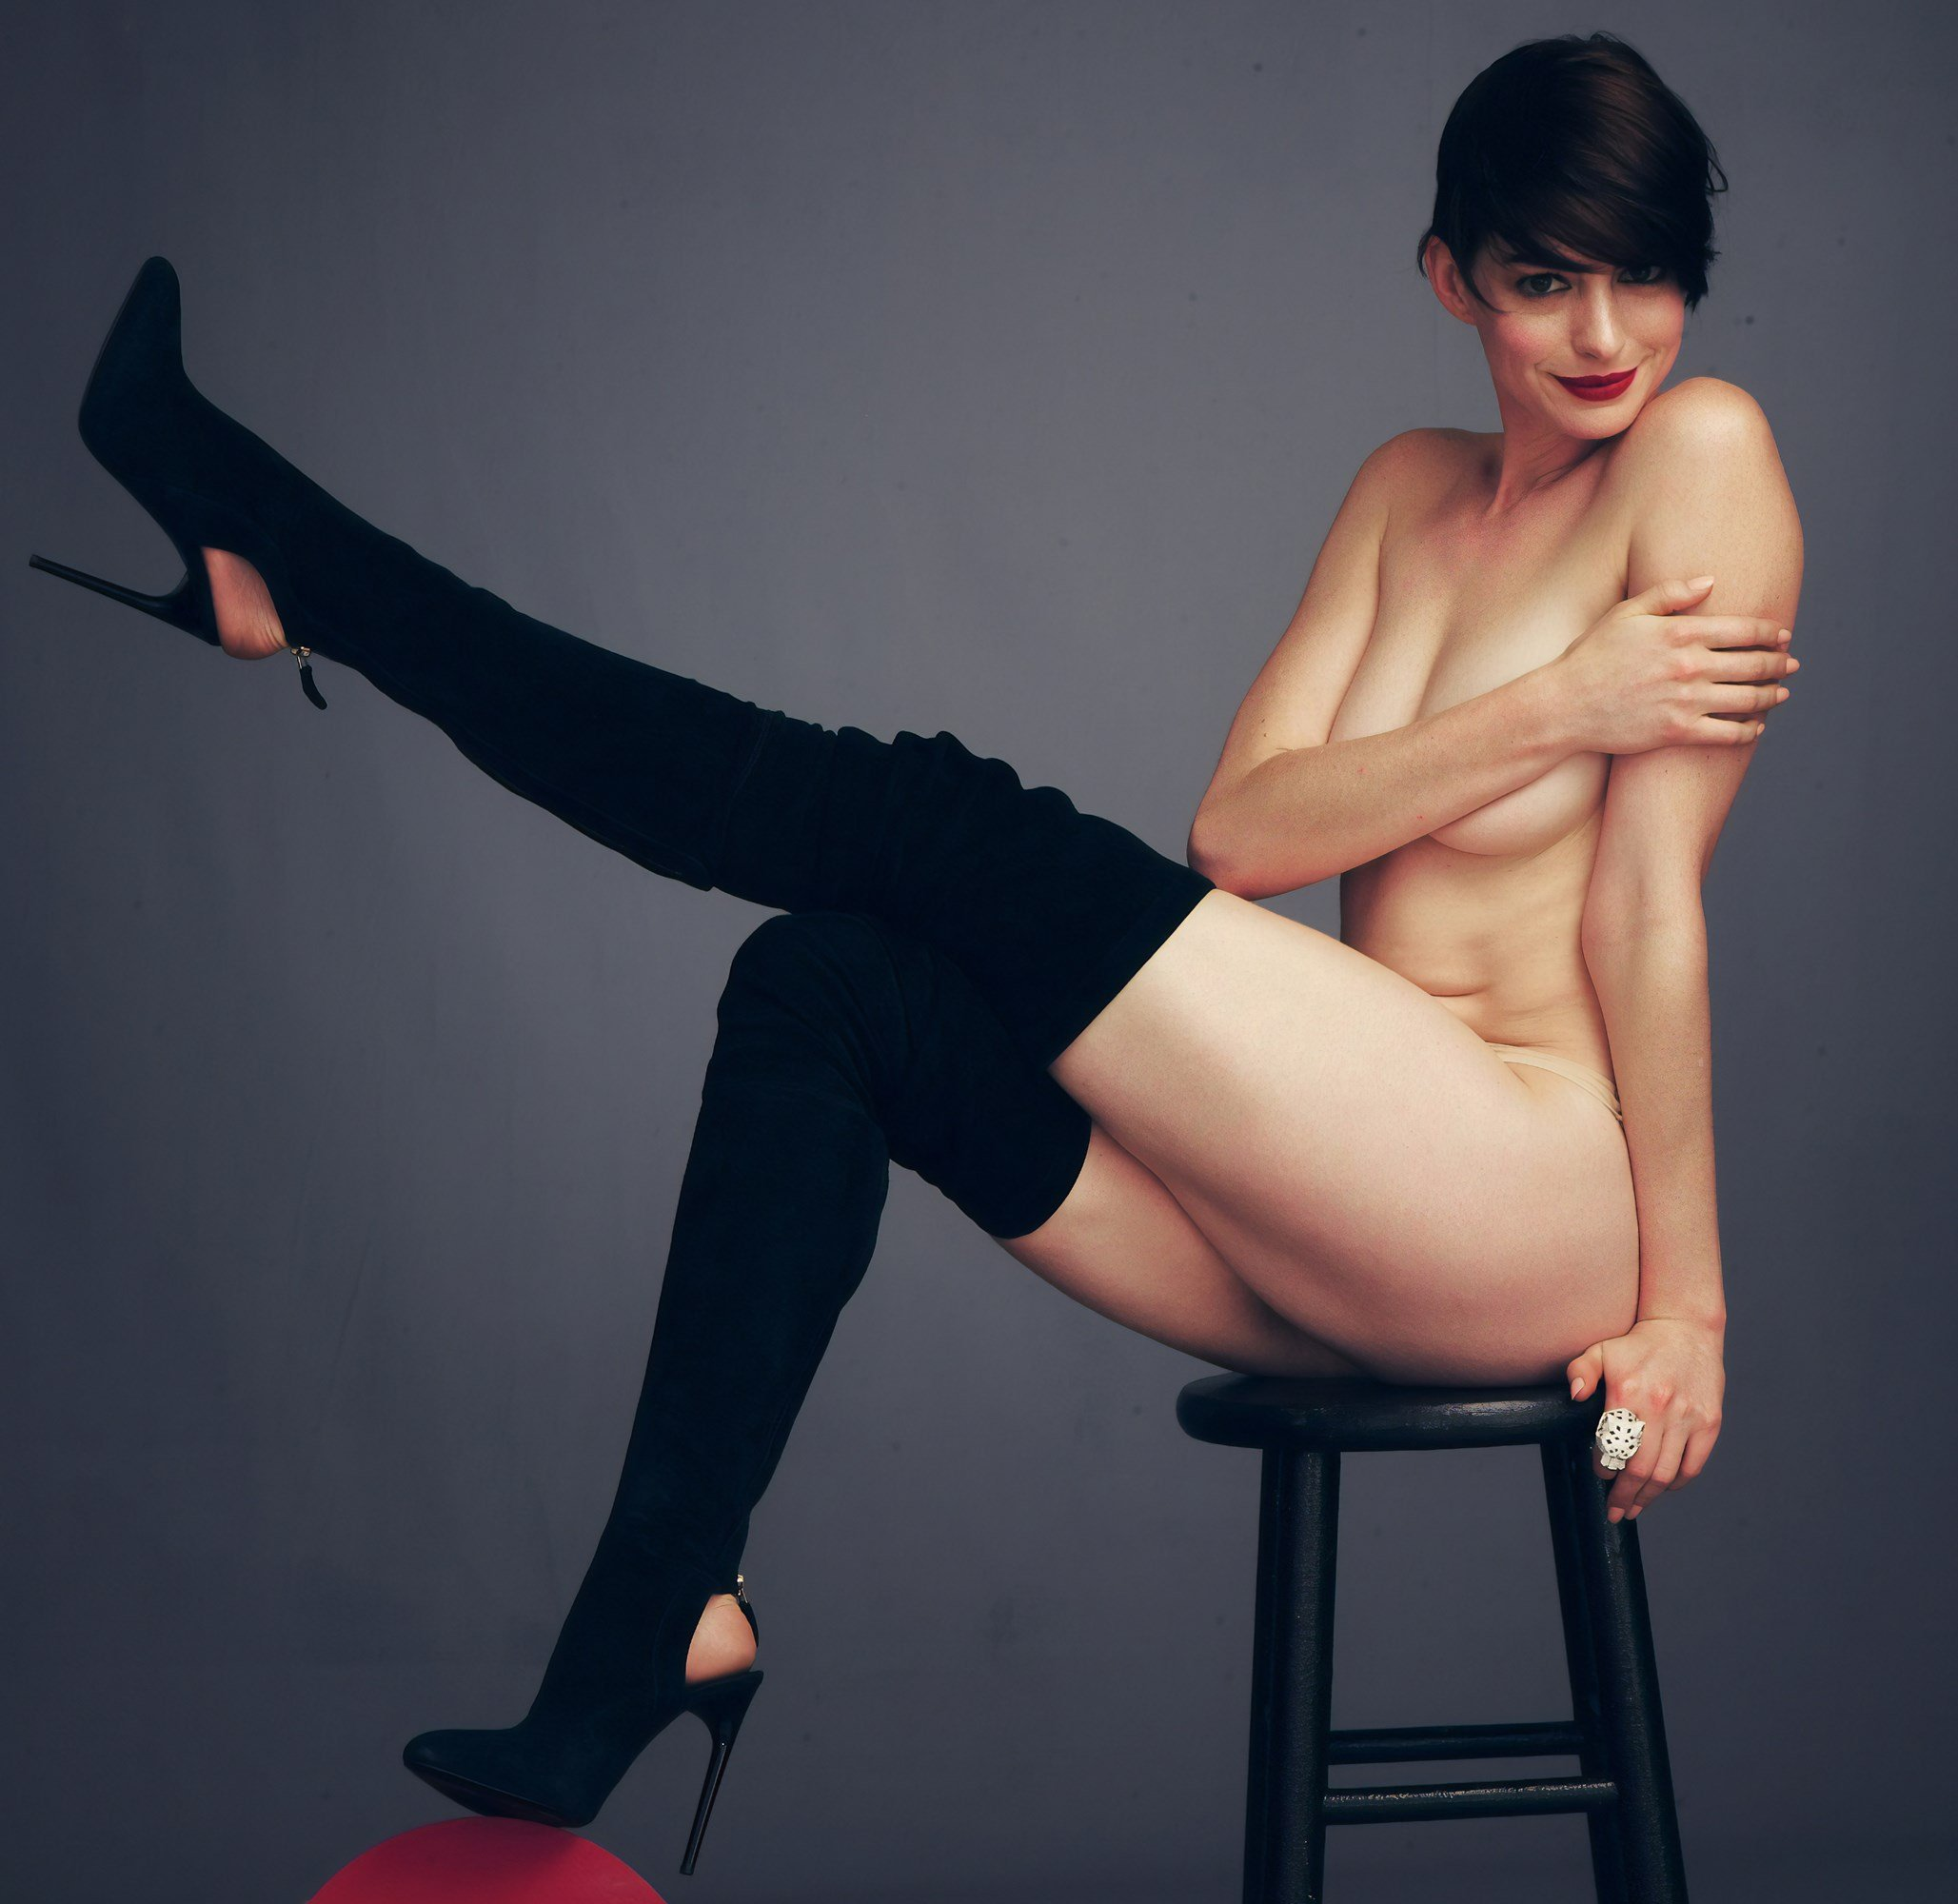 Anne Hathaway Covered Nude Outtakes Leaked